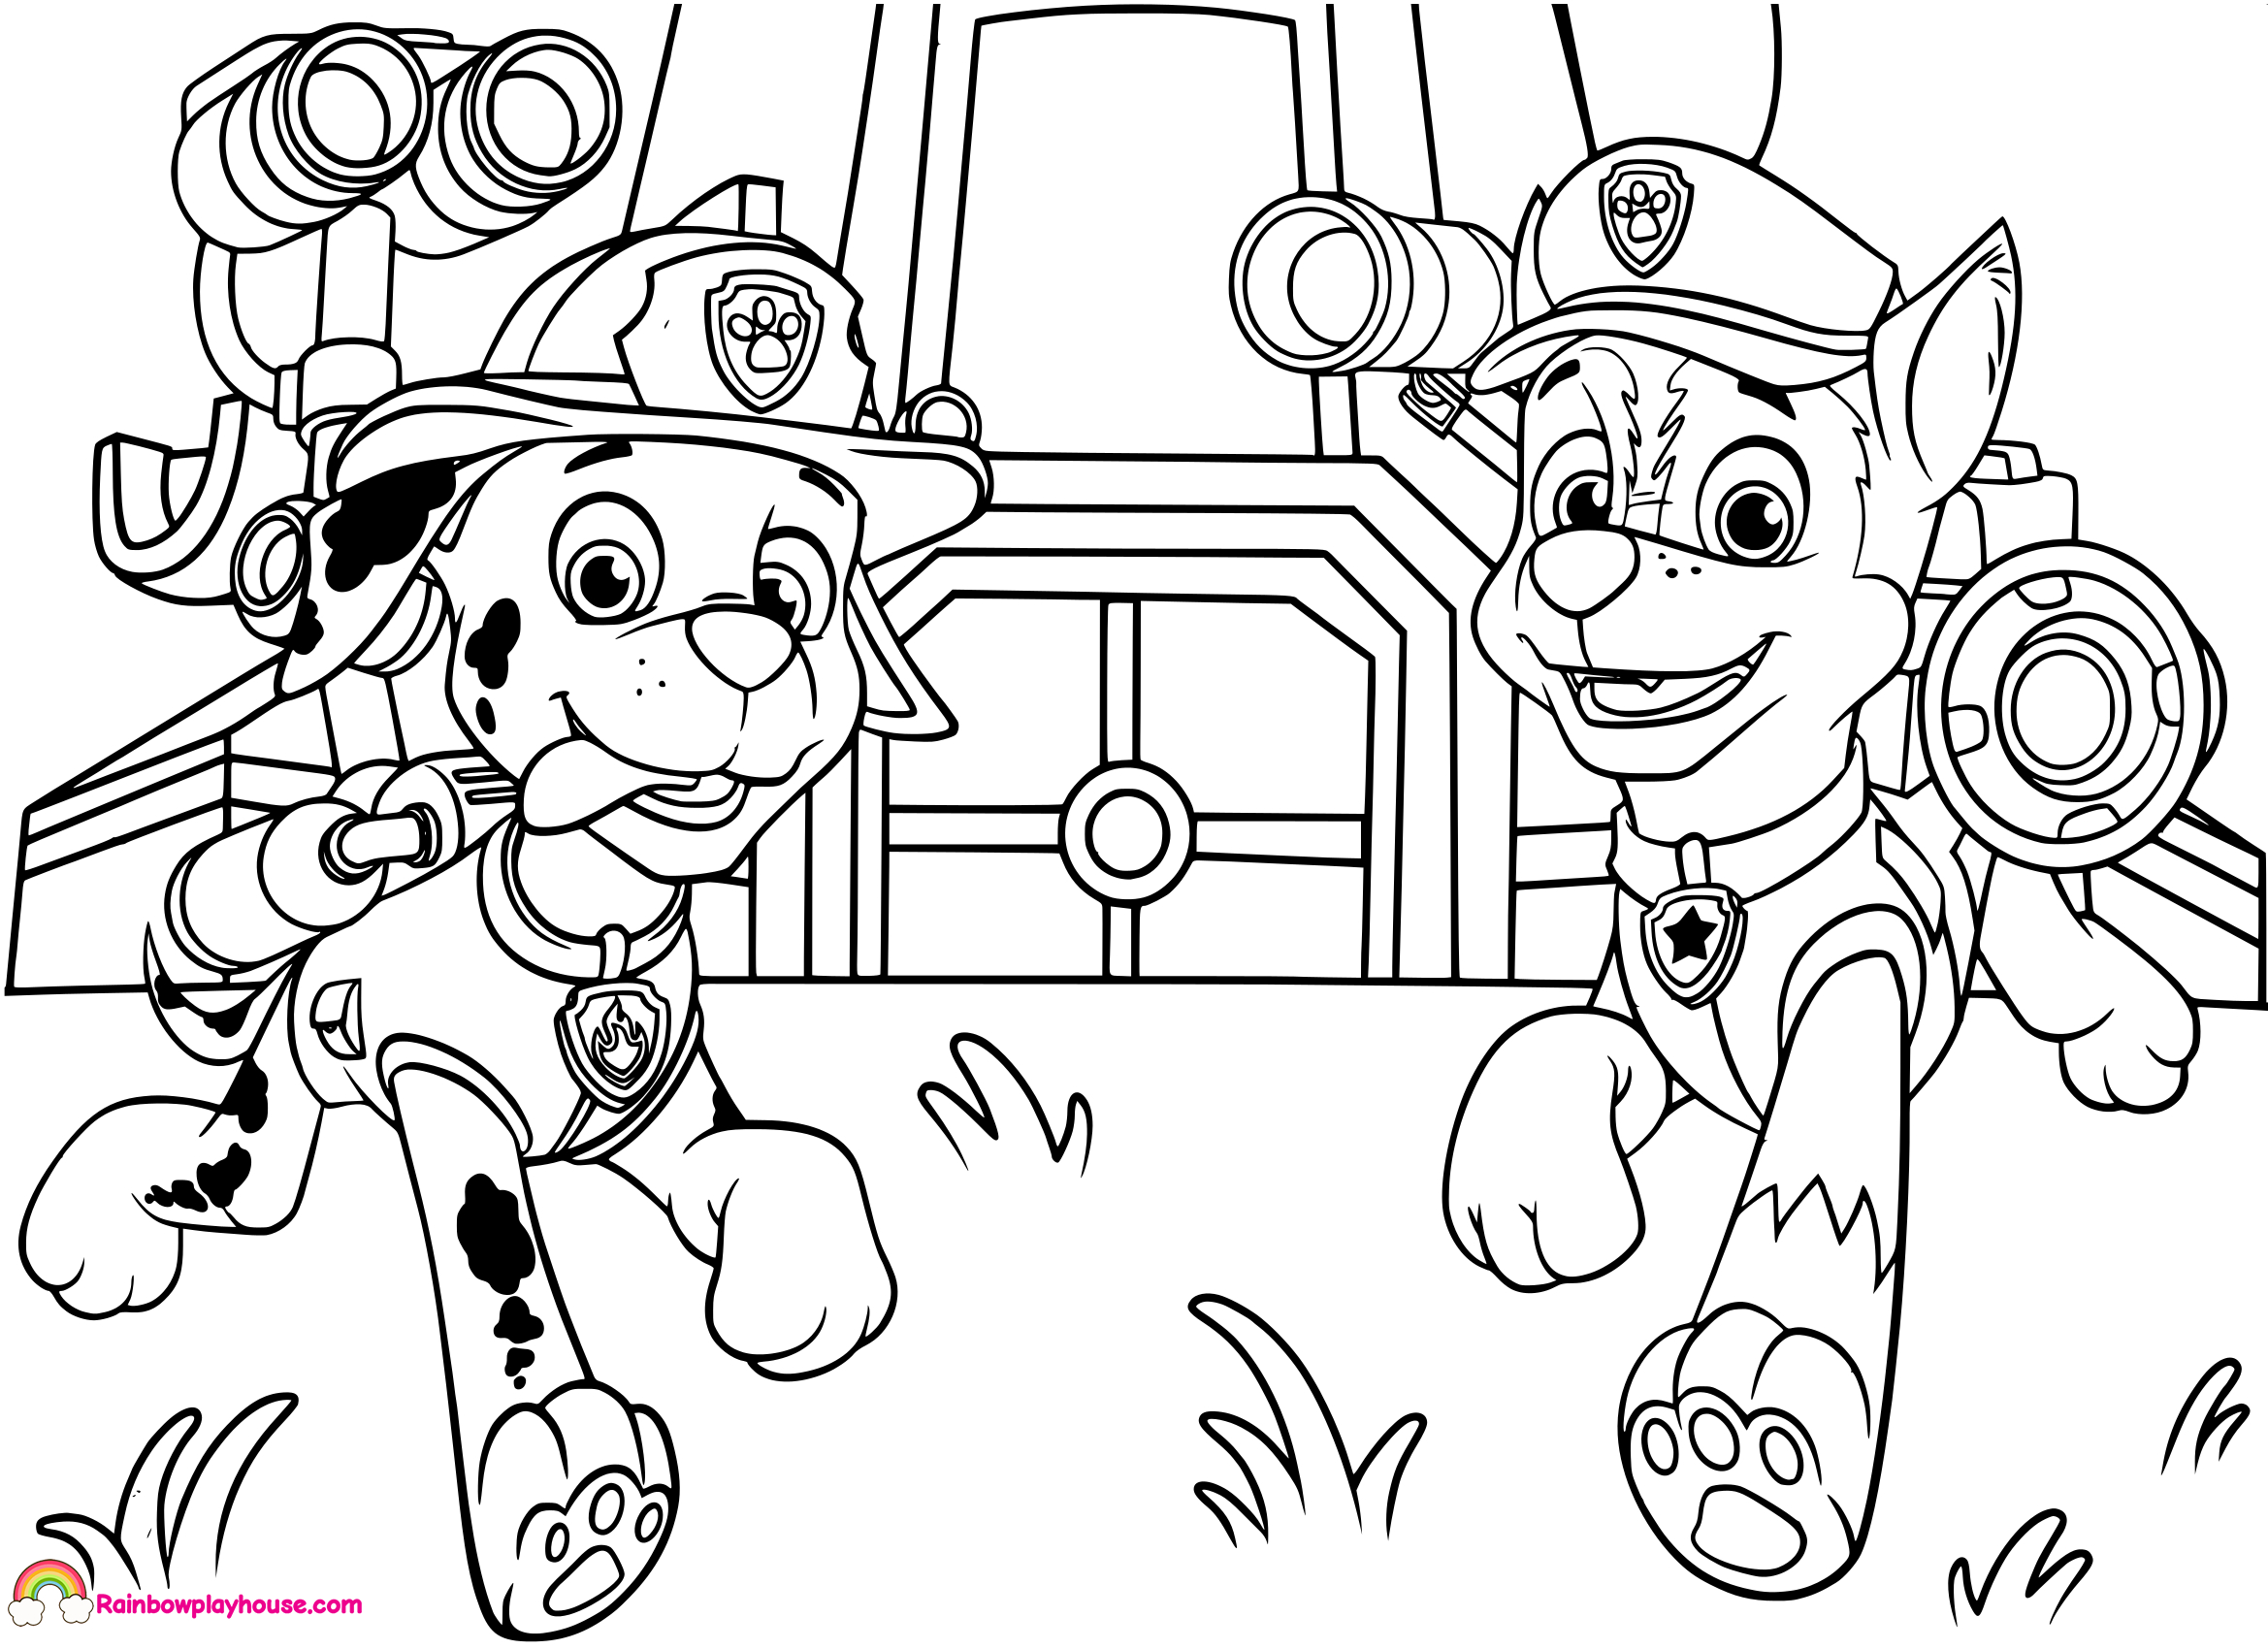 Paw Patrol Coloring Pages Marshall Coloring Pages Paw Patrol Ryder Coloring Pages To Print Stunning